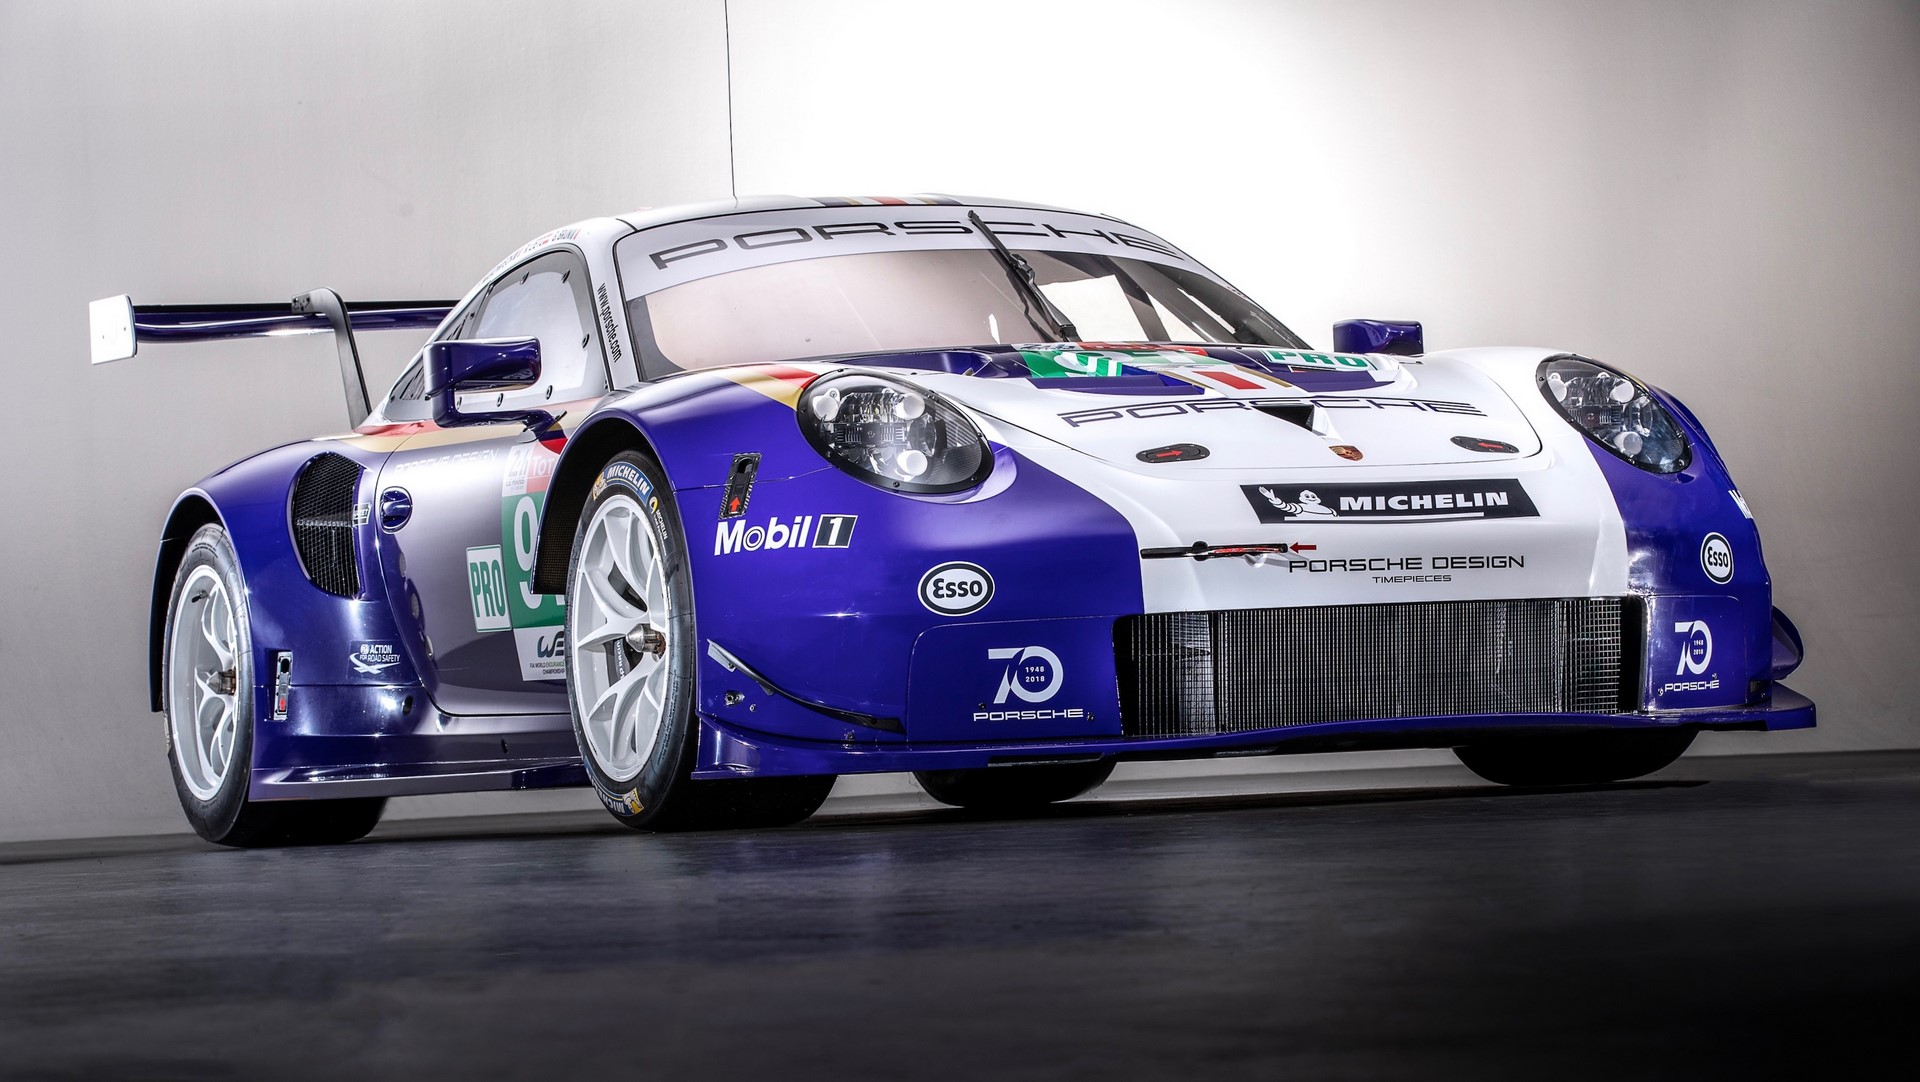 Two Porsche 911 RSR in historic livery (7)